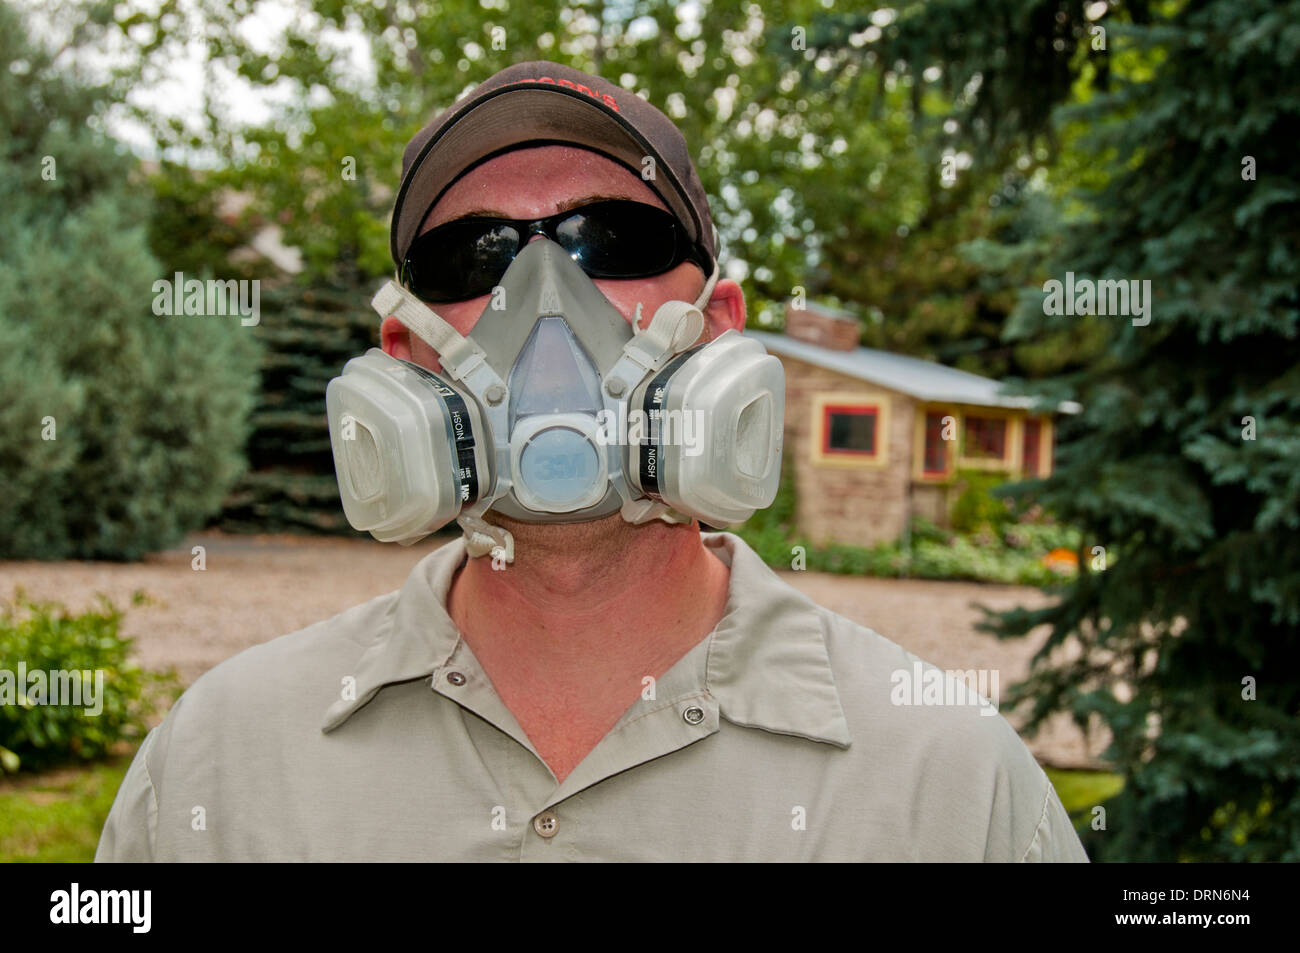 Pesticide/insecticide applicator wearing protective mask - Stock Image